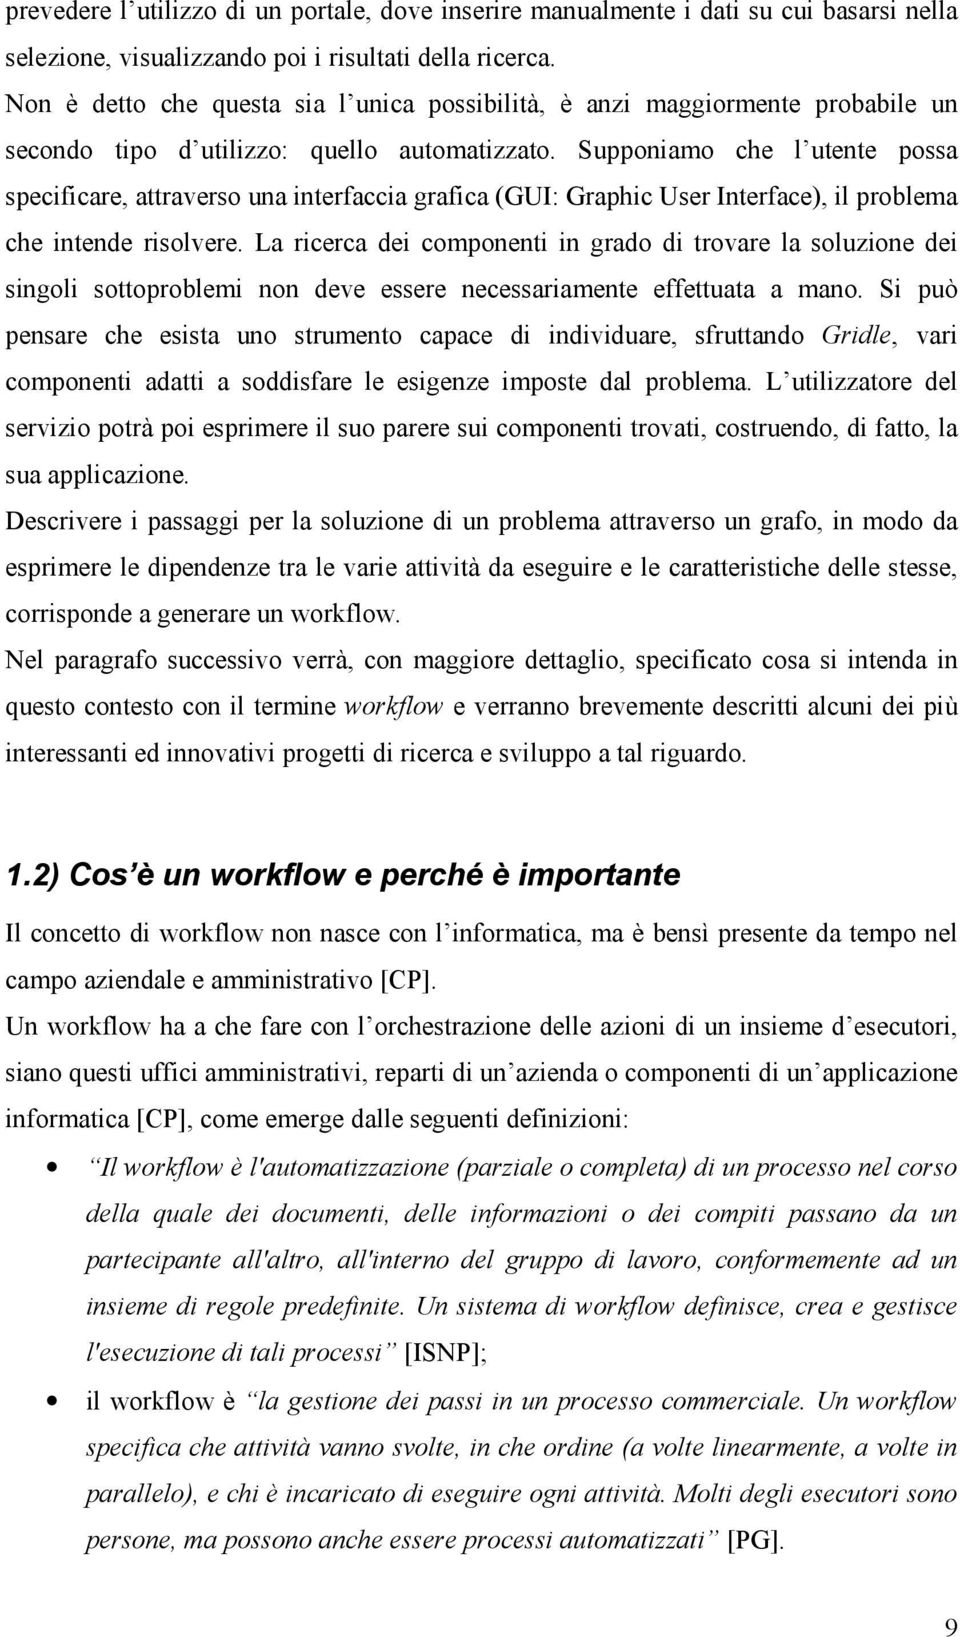 Supponiamo che l utente possa specificare, attraverso una interfaccia grafica (GUI: Graphic User Interface), il problema che intende risolvere.